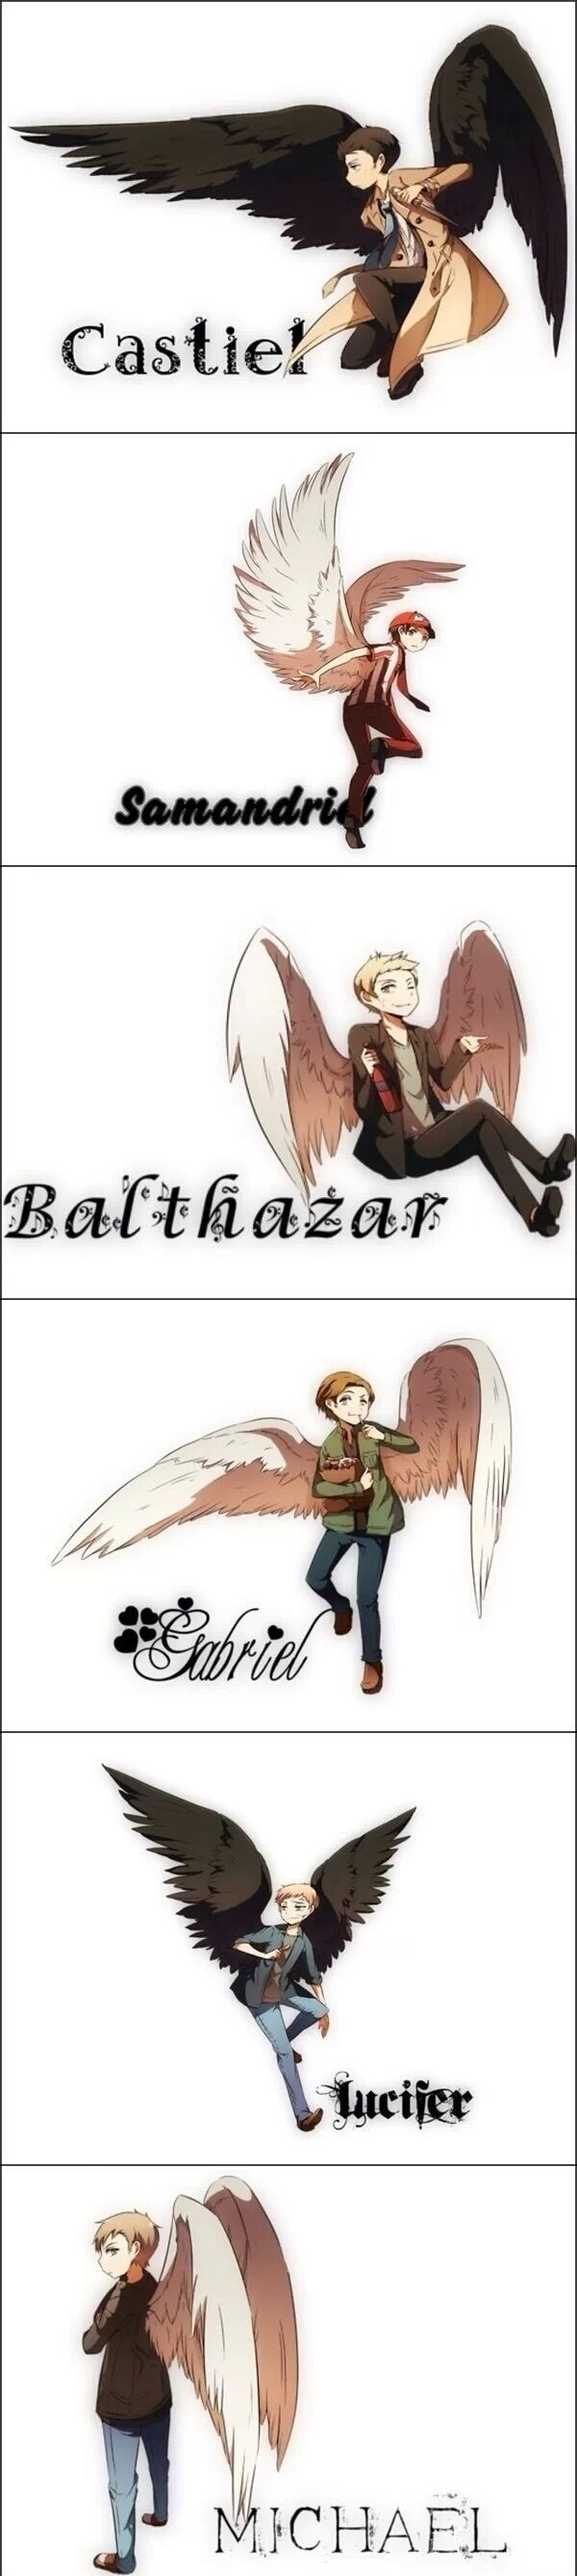 the angels we actually liked except the last one Lucifer is tied with Castiel as my favorite